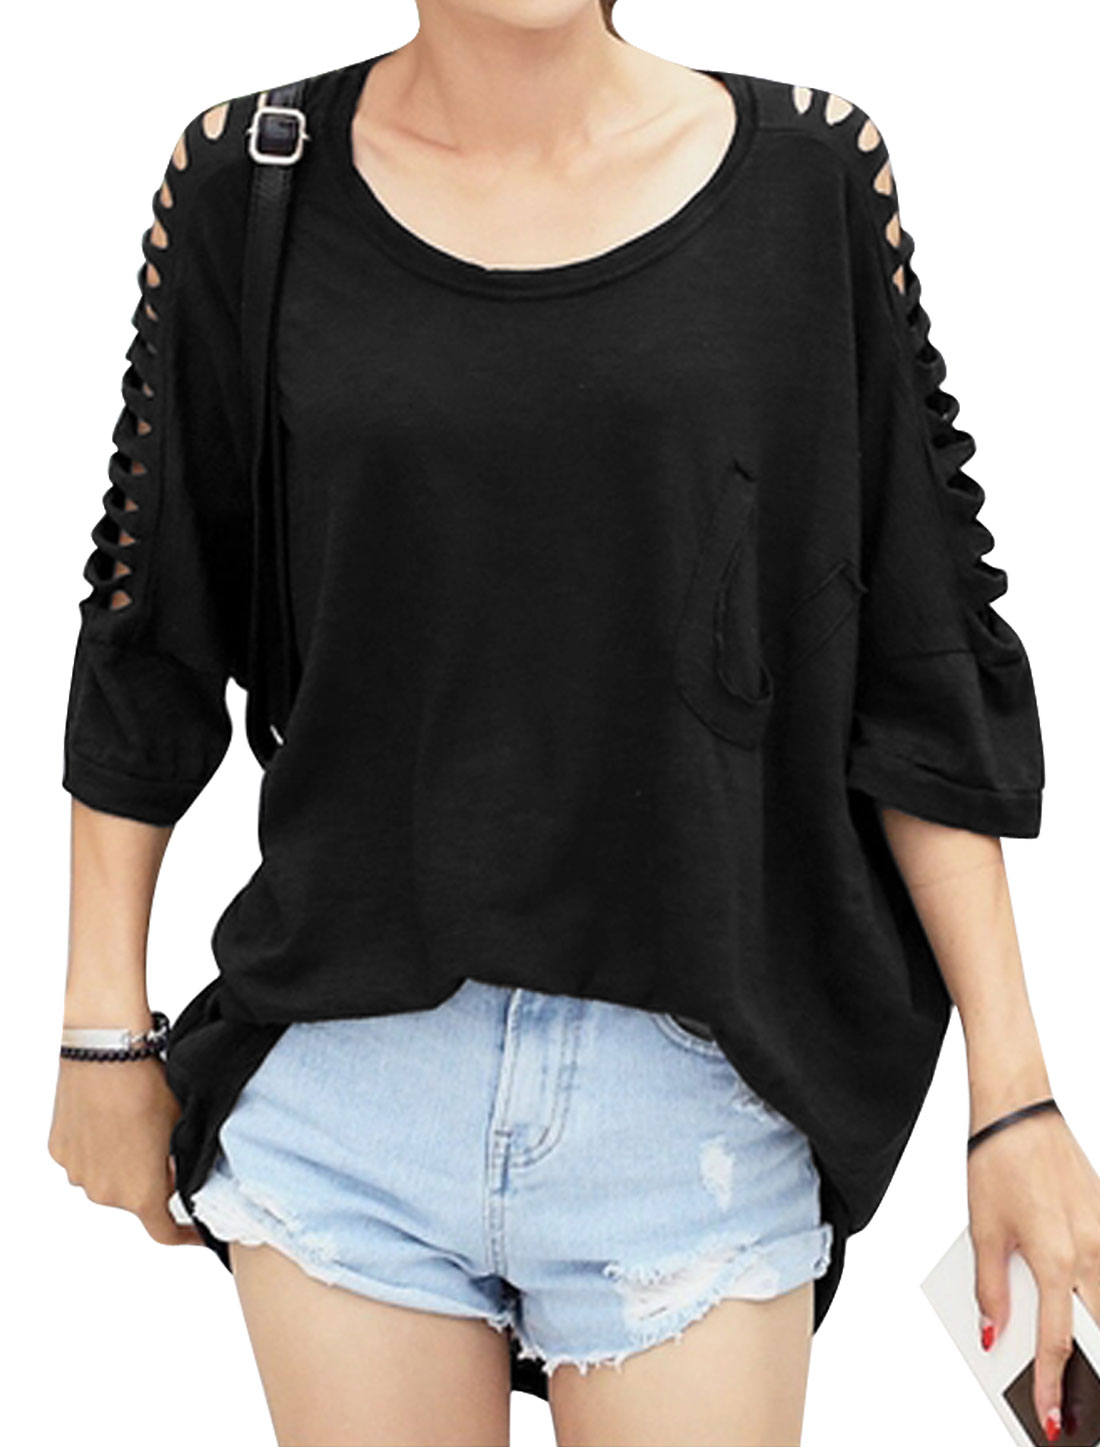 Lady 3/4 Batwing Sleeve Cut Out Design Irregular Hem Loose Top Black S